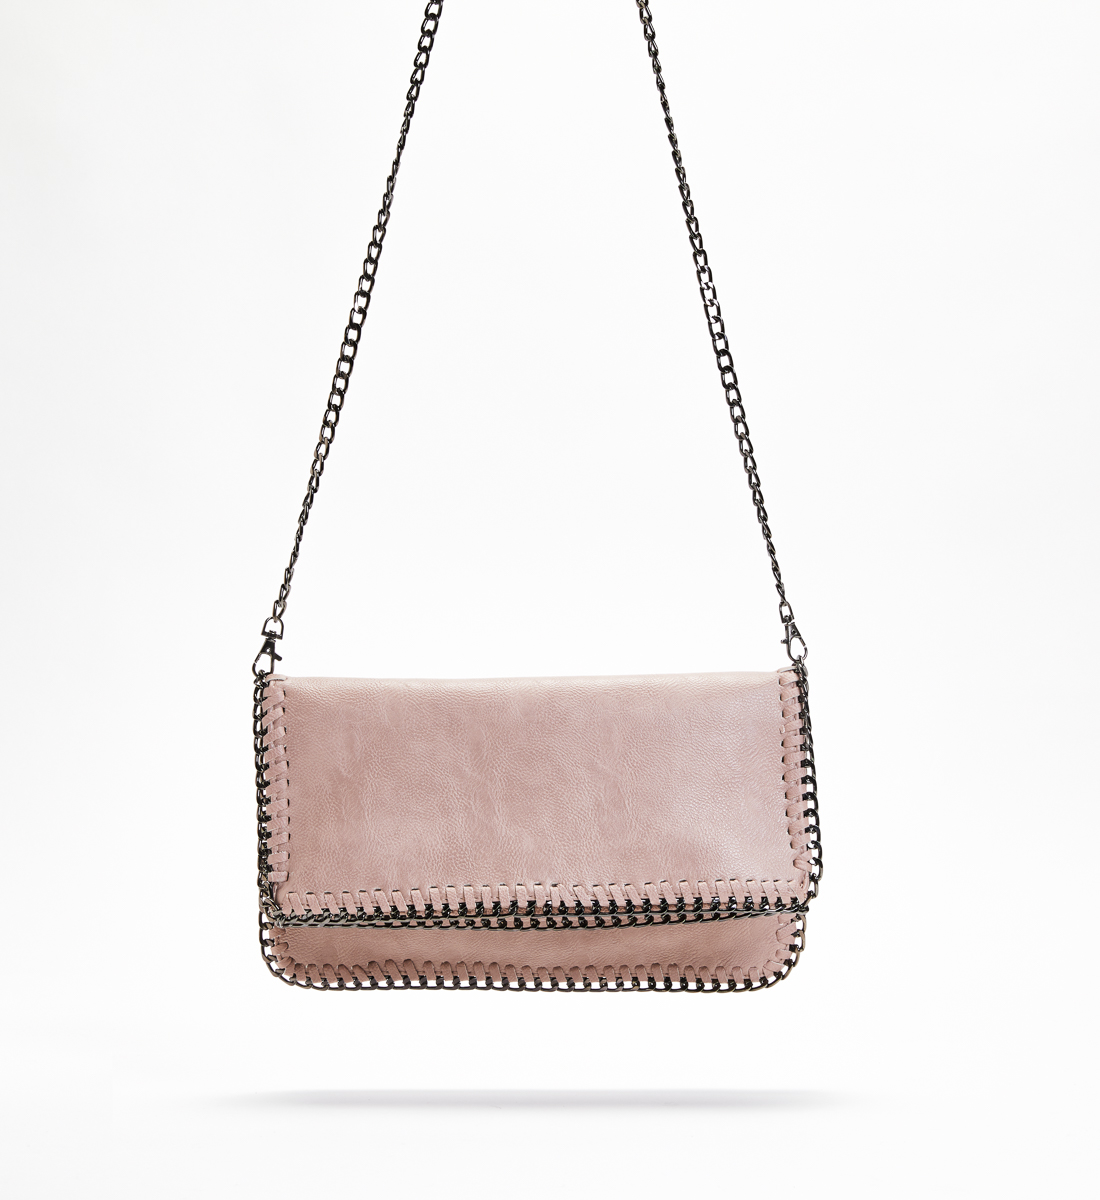 Chain-Trim Crossbody Clutch, , hi-res